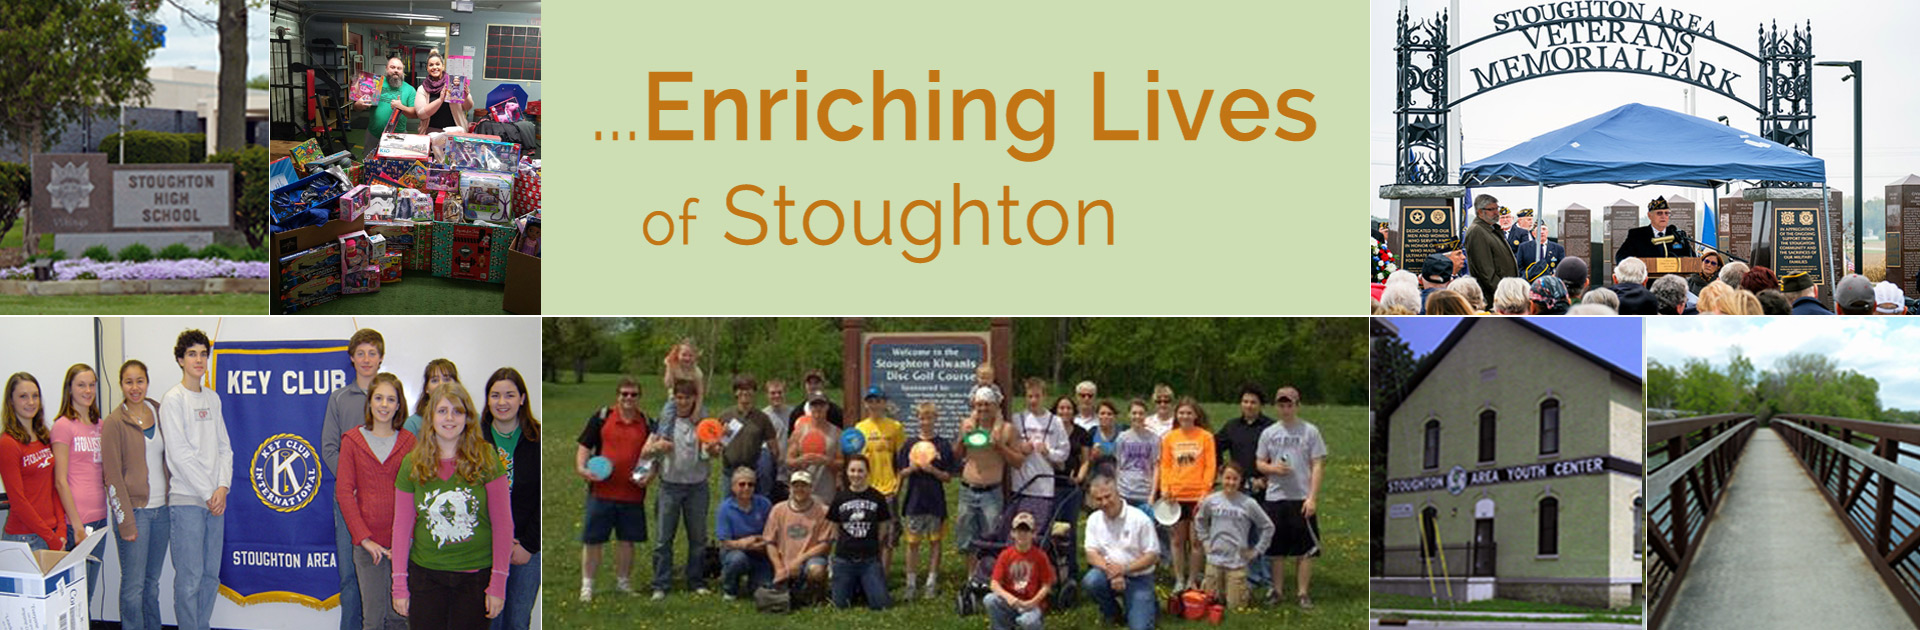 Enriching Lives of Stoughton